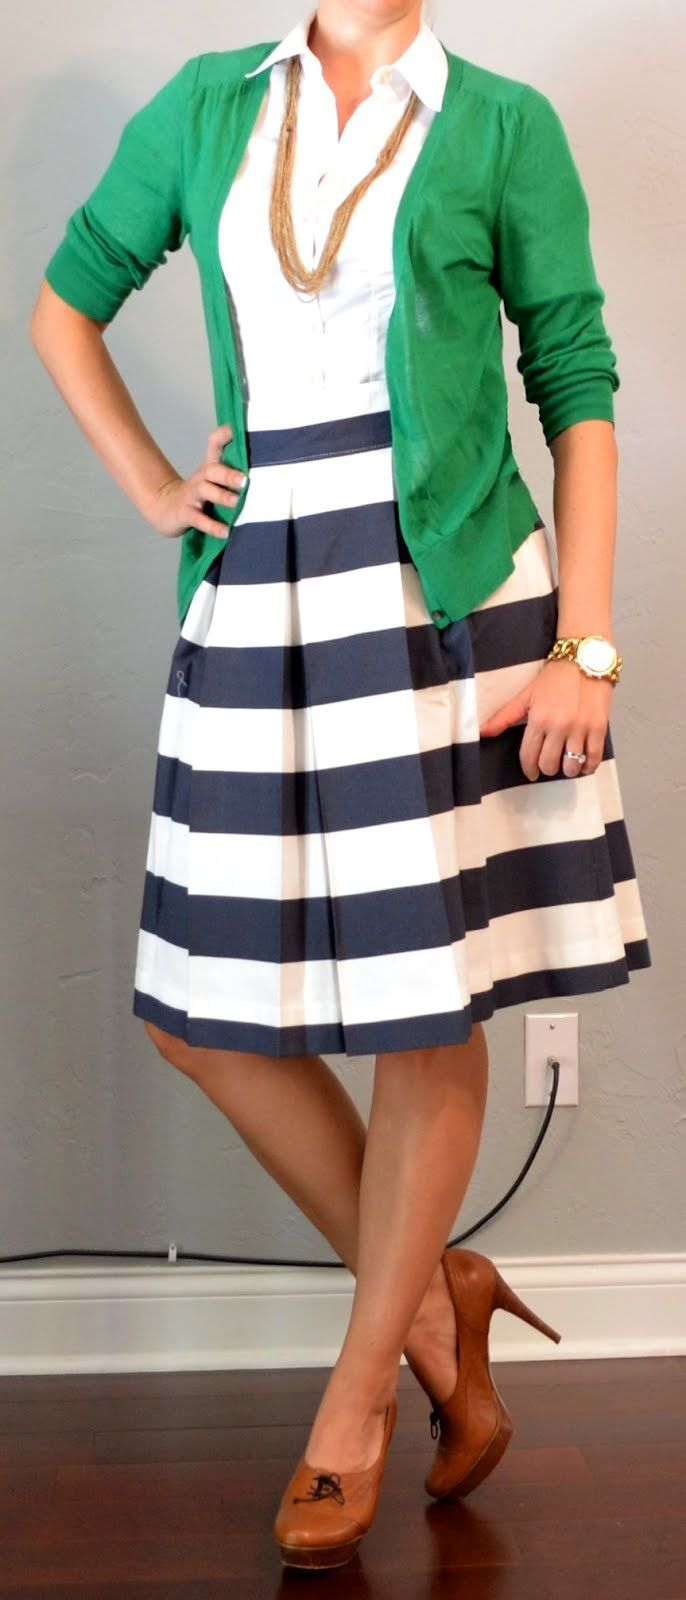 Love the skirt! I would pick different shoes...